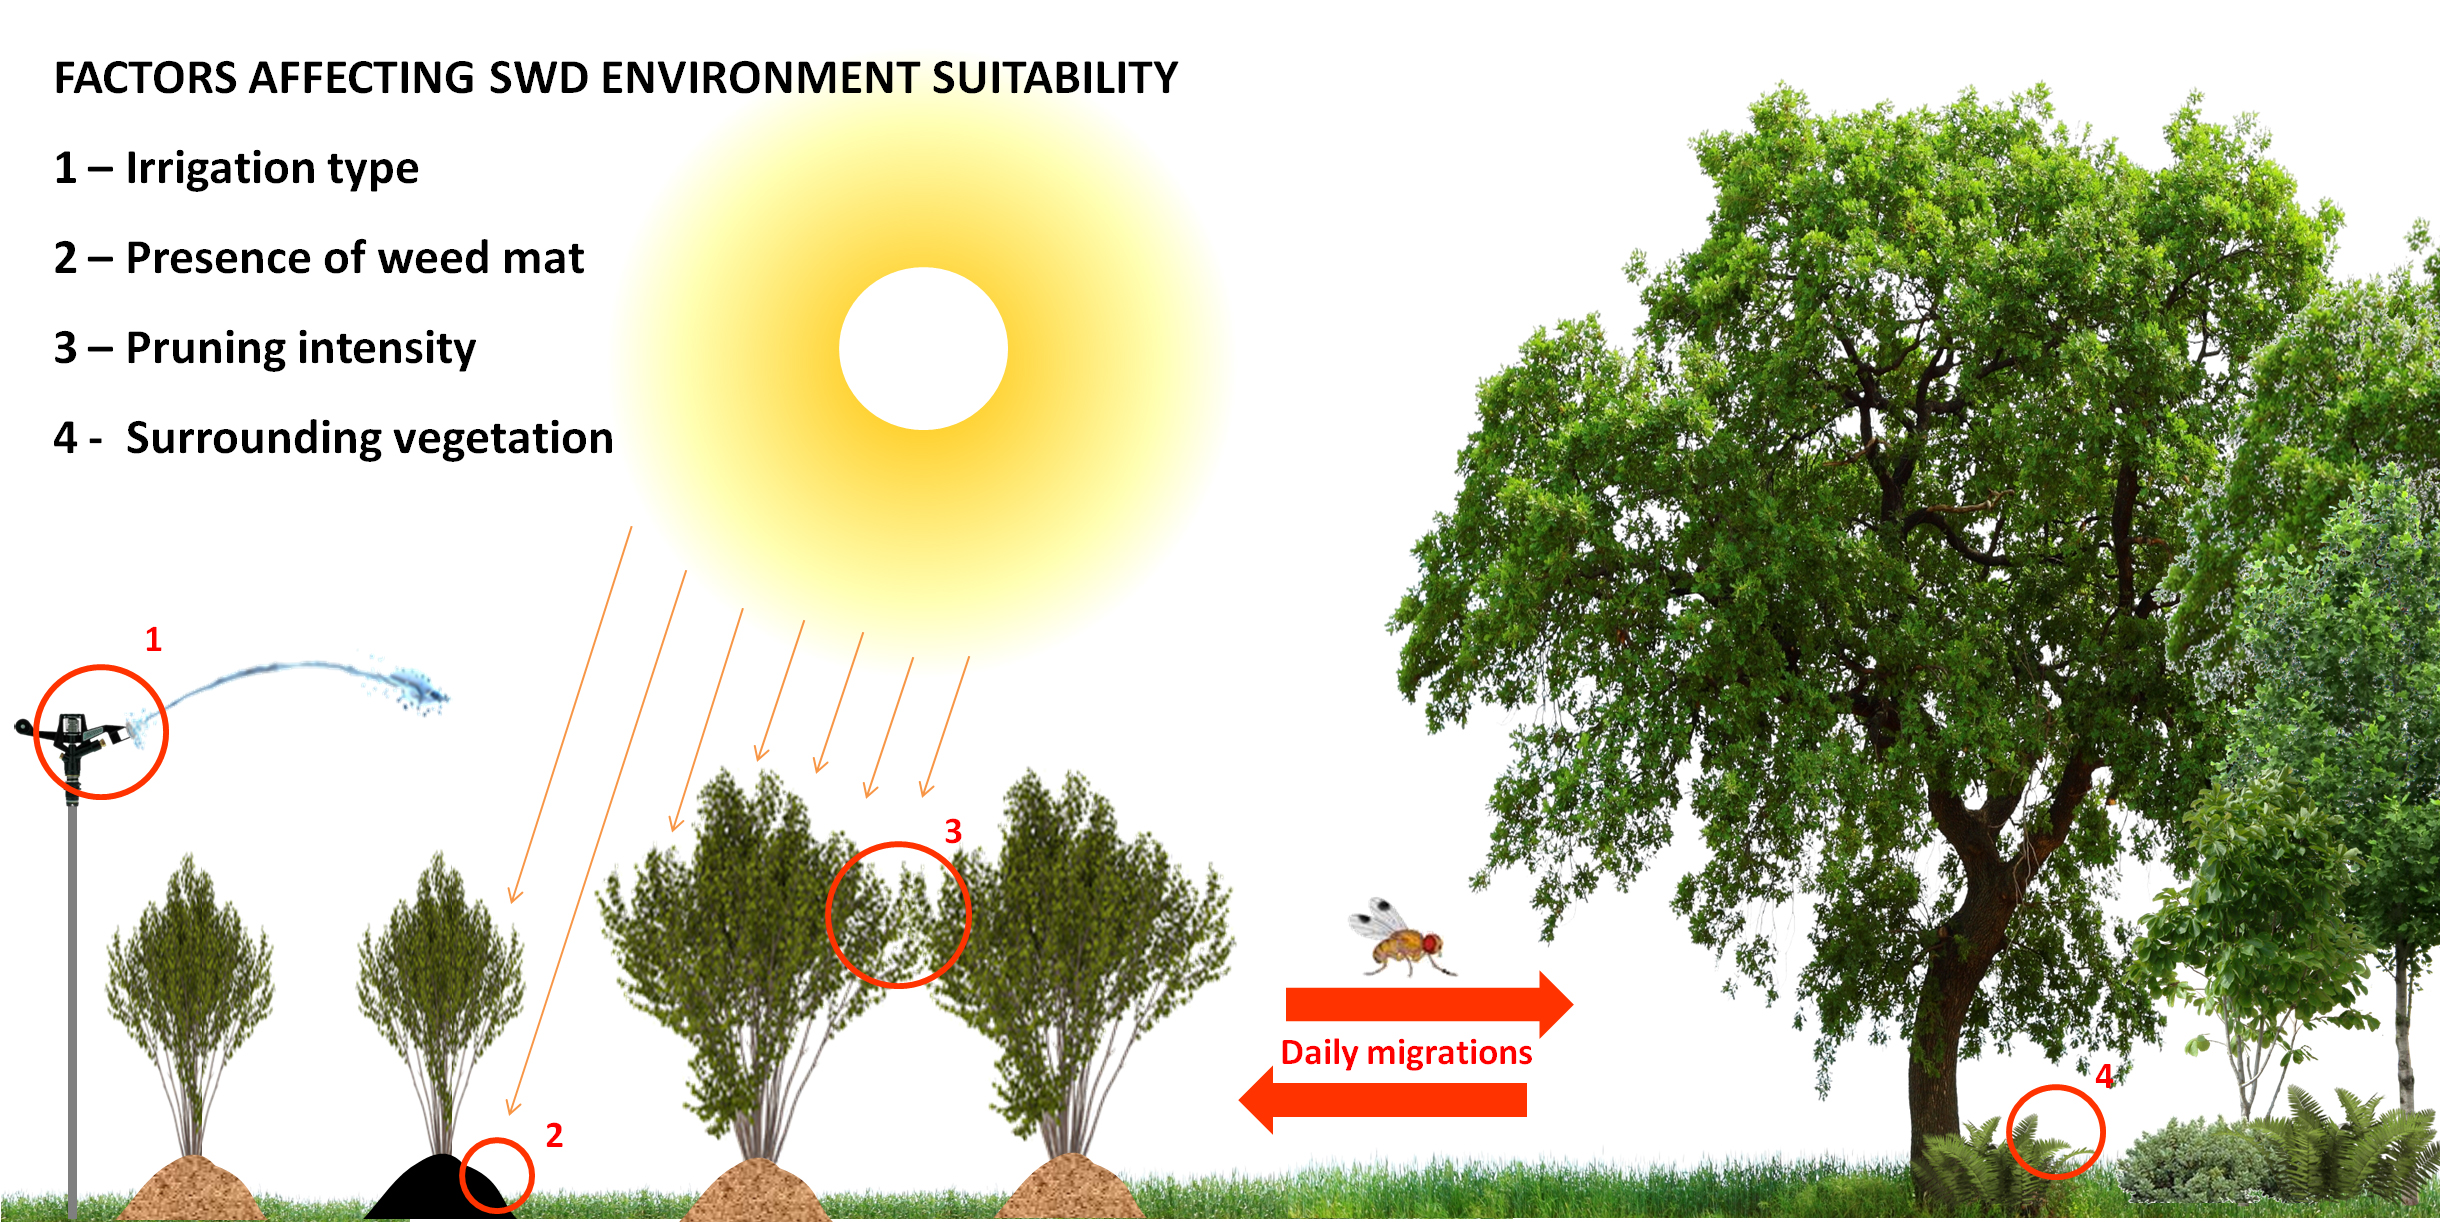 Illustration: Marco Rossi-Stacconi, © Oregon State University Figure 2. Microclimates can fundamentally change SWD pressure. 1) Drip irrigation reduces relative humidity, creating less suitable microclimates compared to overhead irrigation. 2) Weed fabric reduces the ability of pupating larvae to burrow into more suitable microclimates under the soil. 3) Heavier pruning increases light penetration and reduces shade, resulting in microclimates within the crop canopy that are less suited to SWD. Heavier pruni